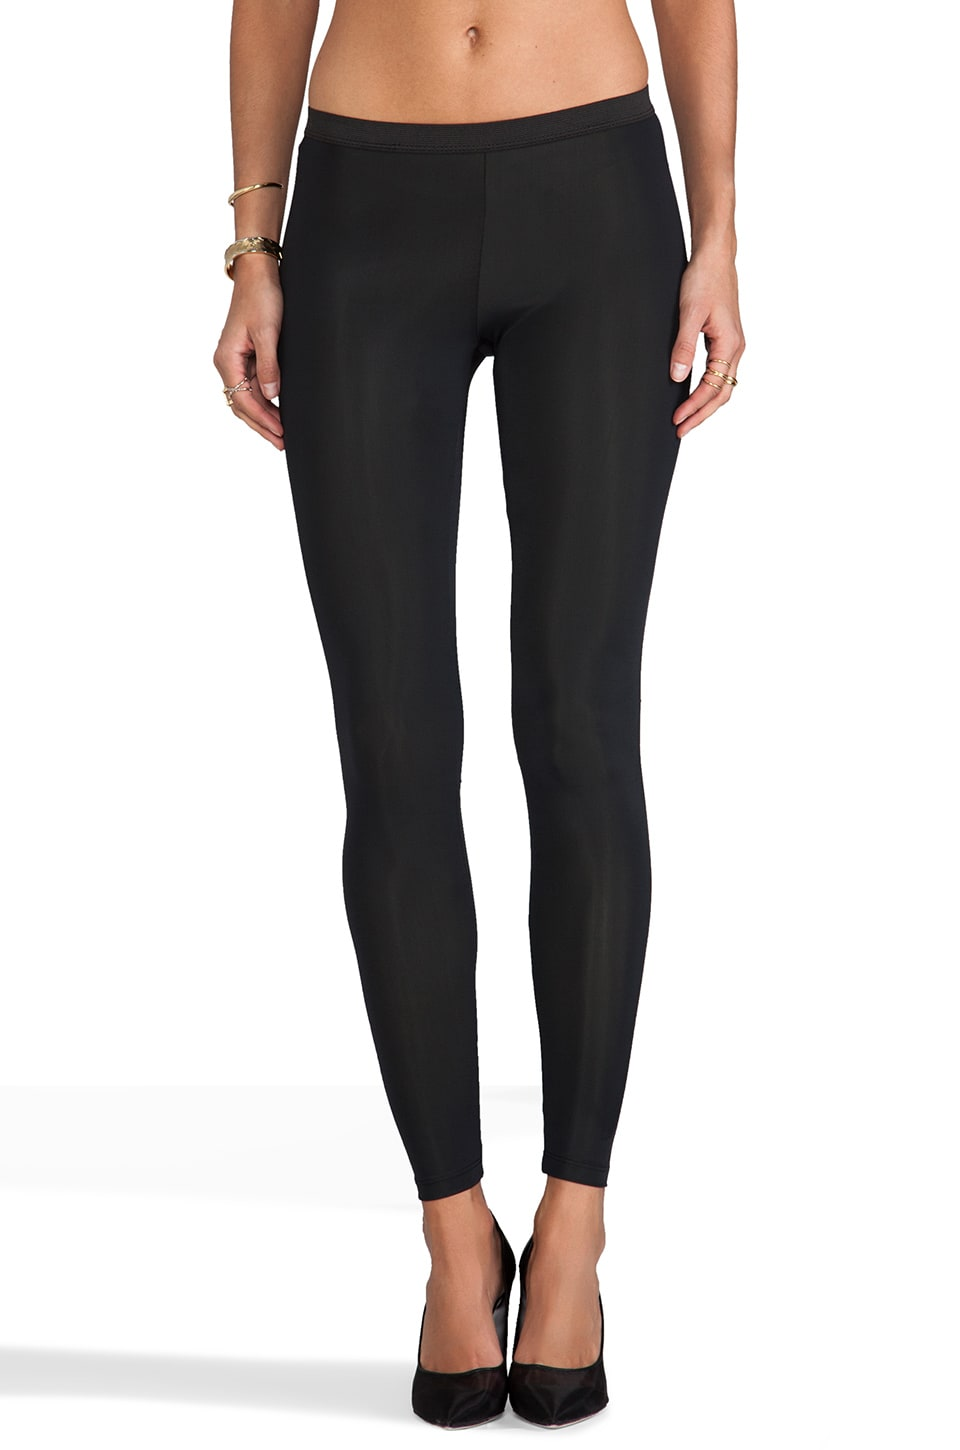 LNA Low Rise Basic Legging in Black